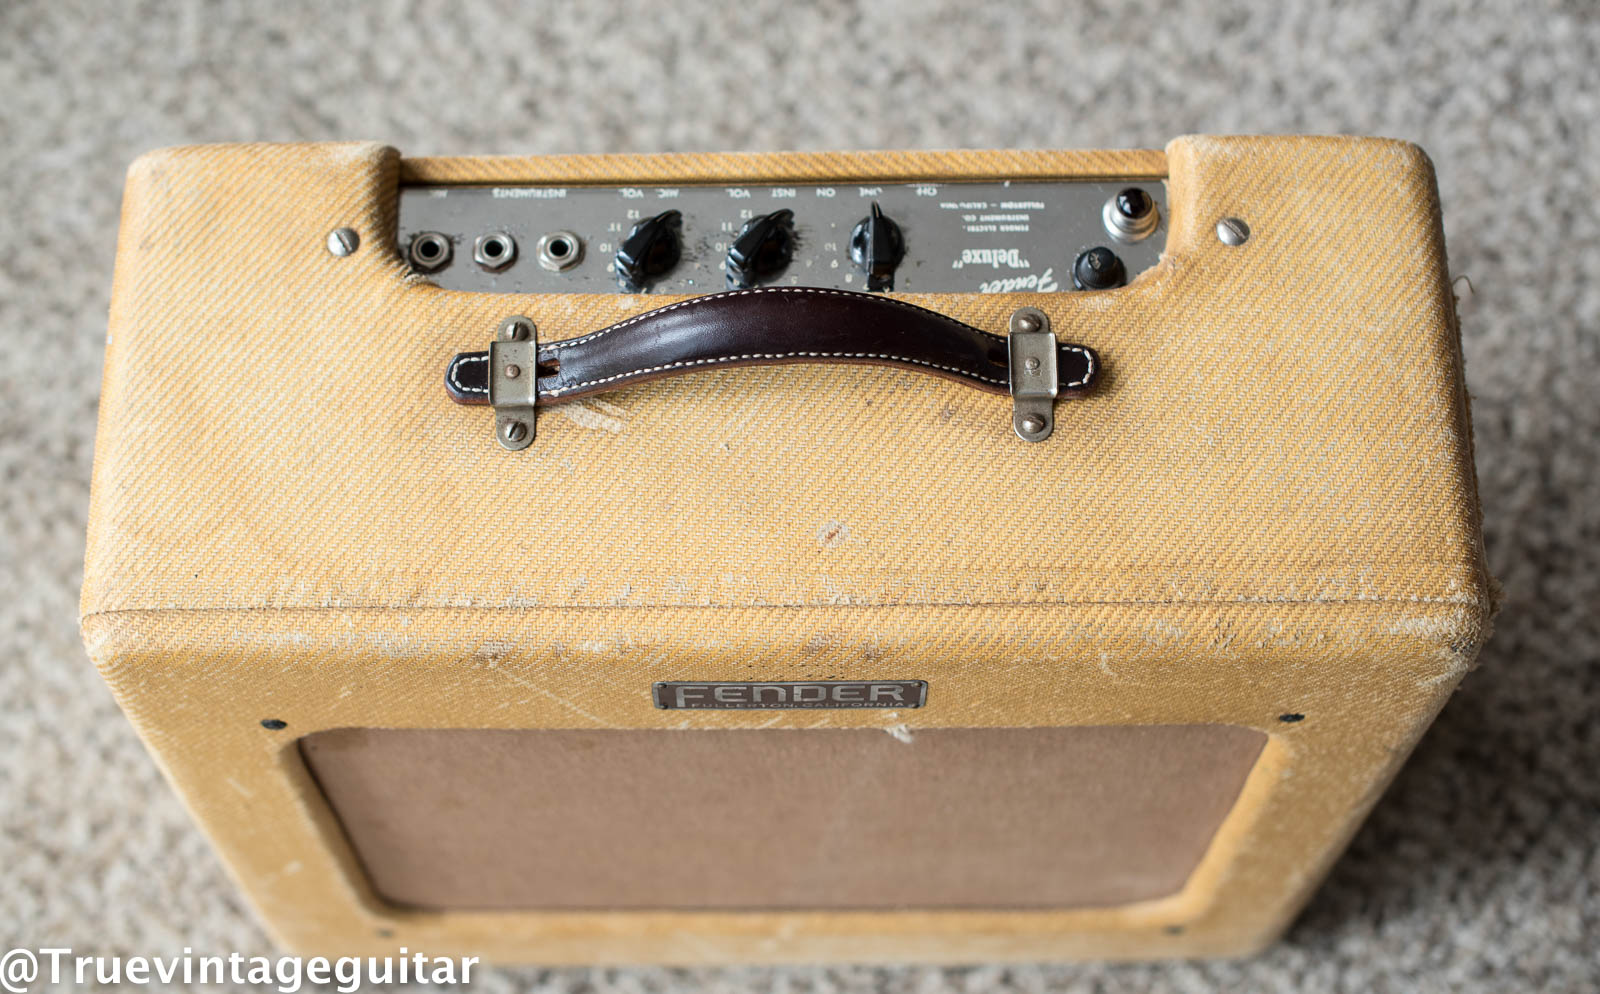 Vintage 1950s Fender guitar amp tweed